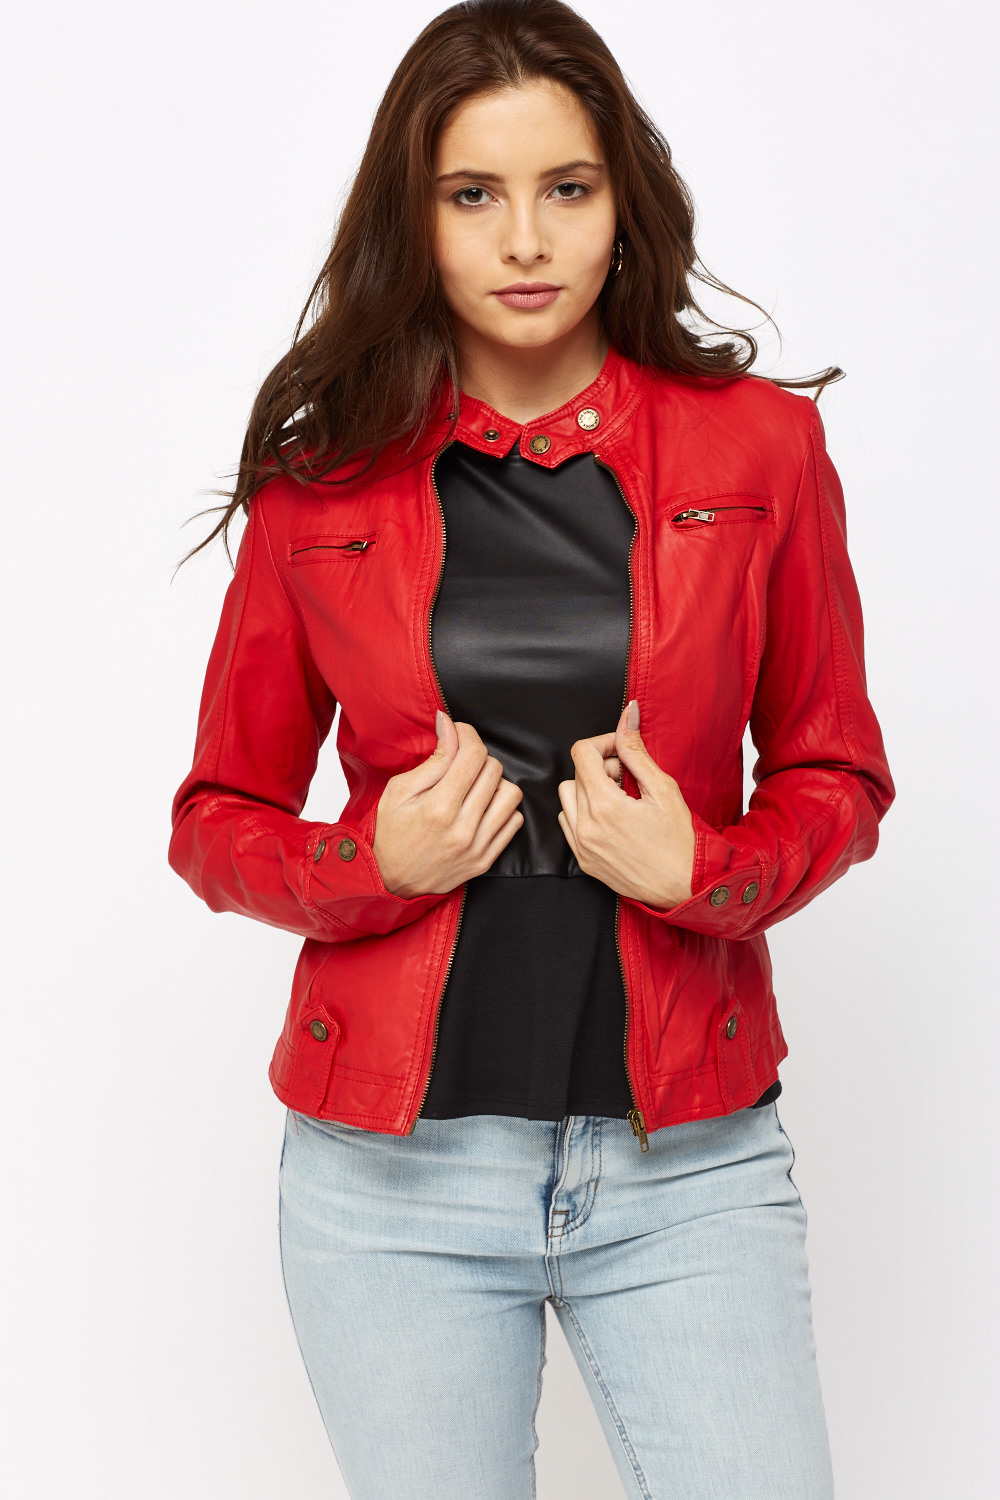 f0a64c318 Red Faux Leather Jacket - Just £5